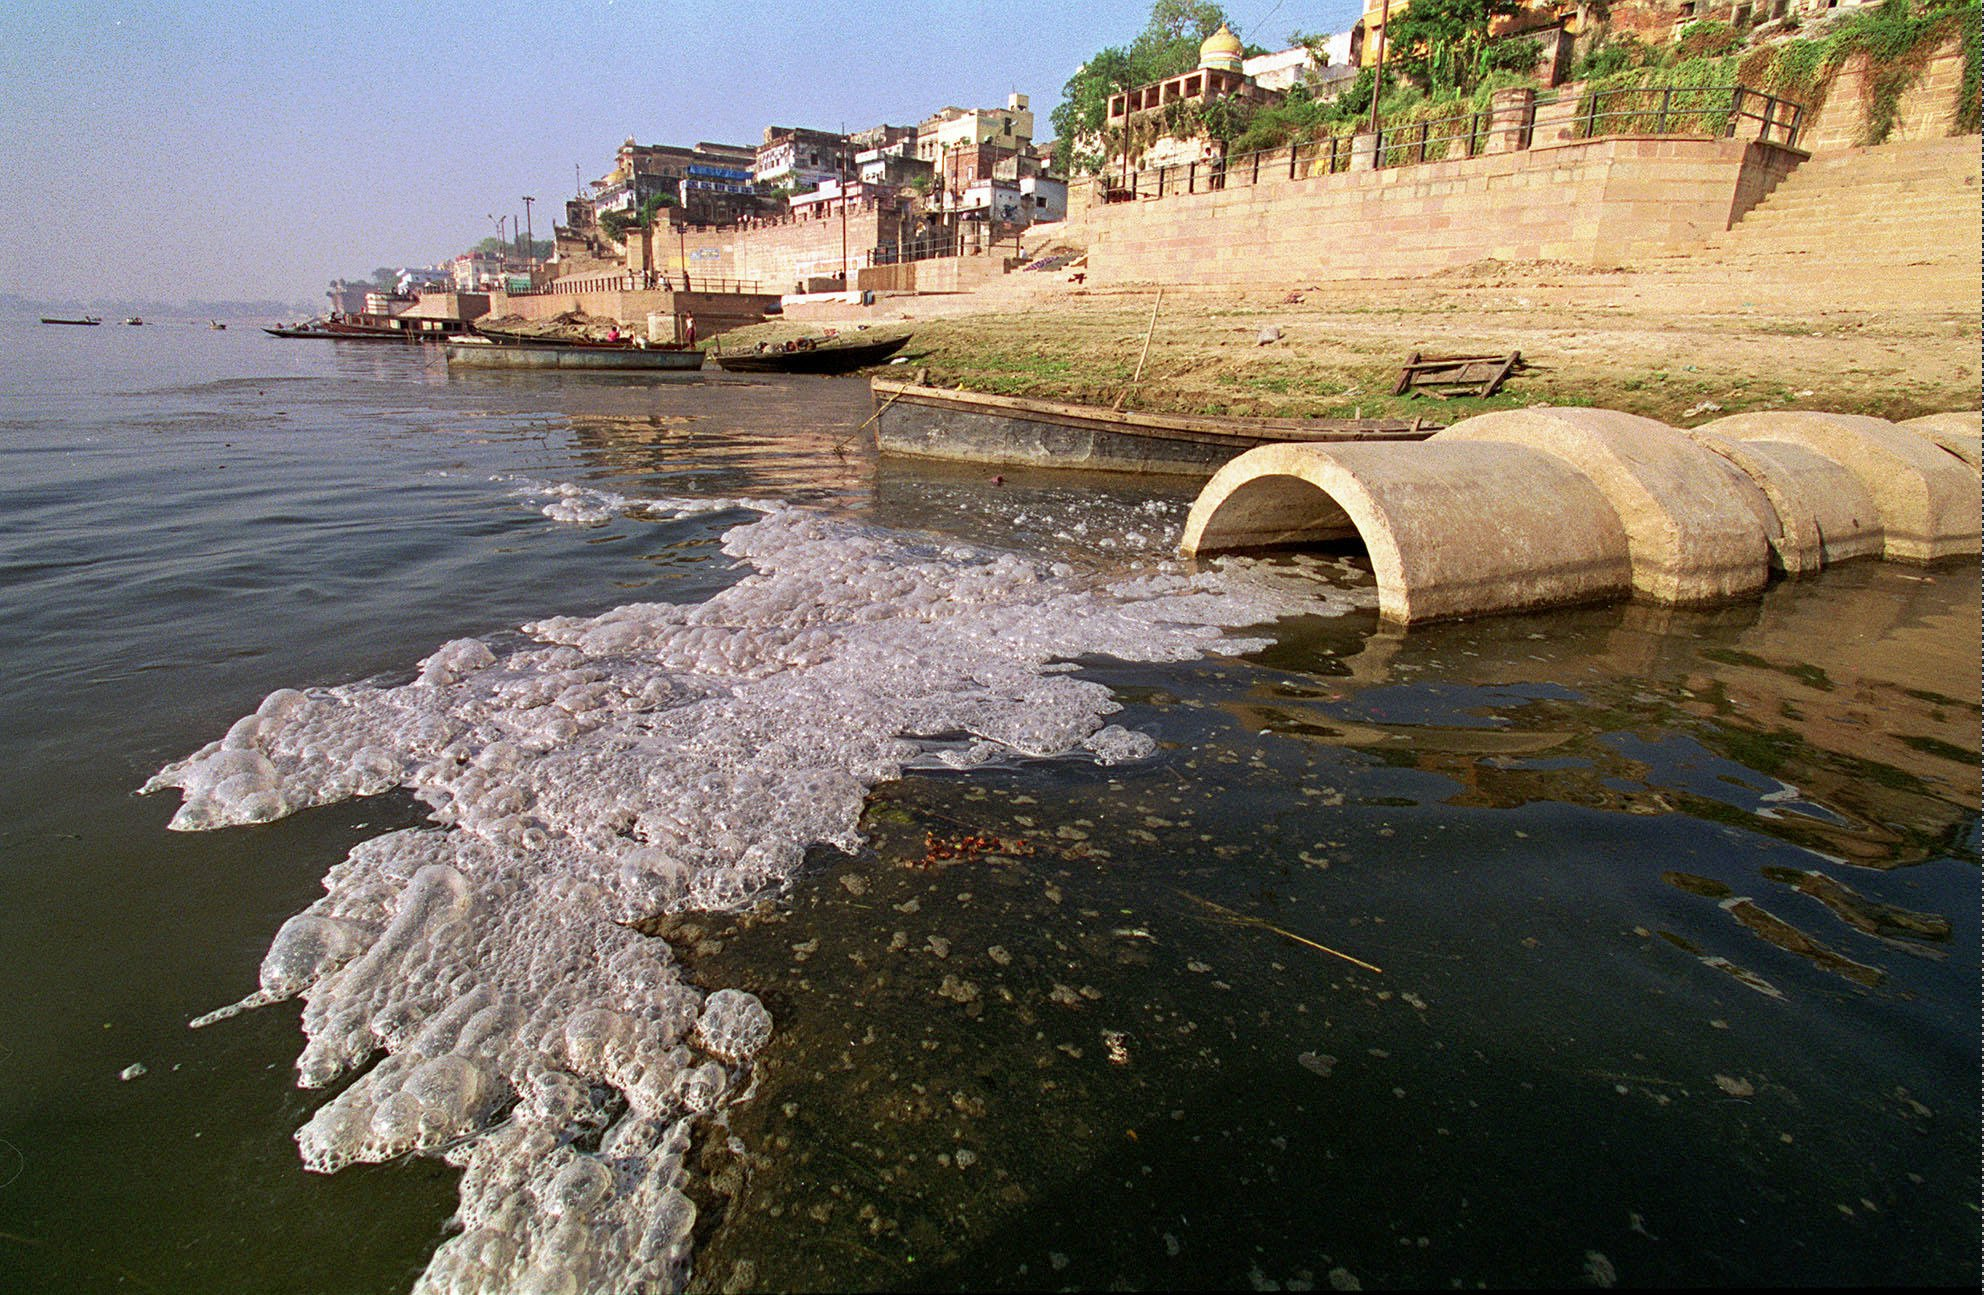 Ganges River in India, raw sewage